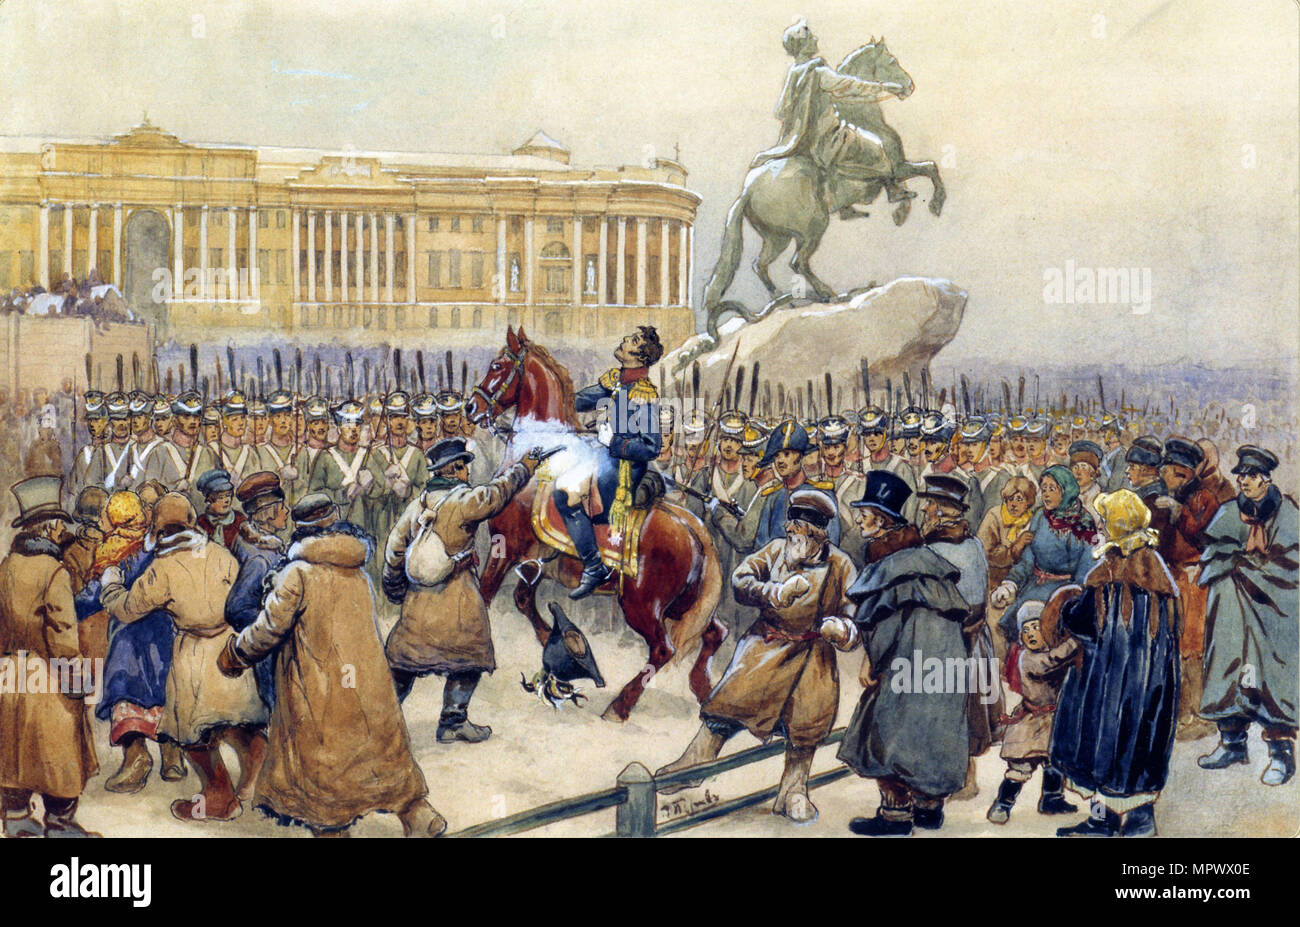 The Decembrist revolt at the Senate Square on December 14, 1825, 1870s.